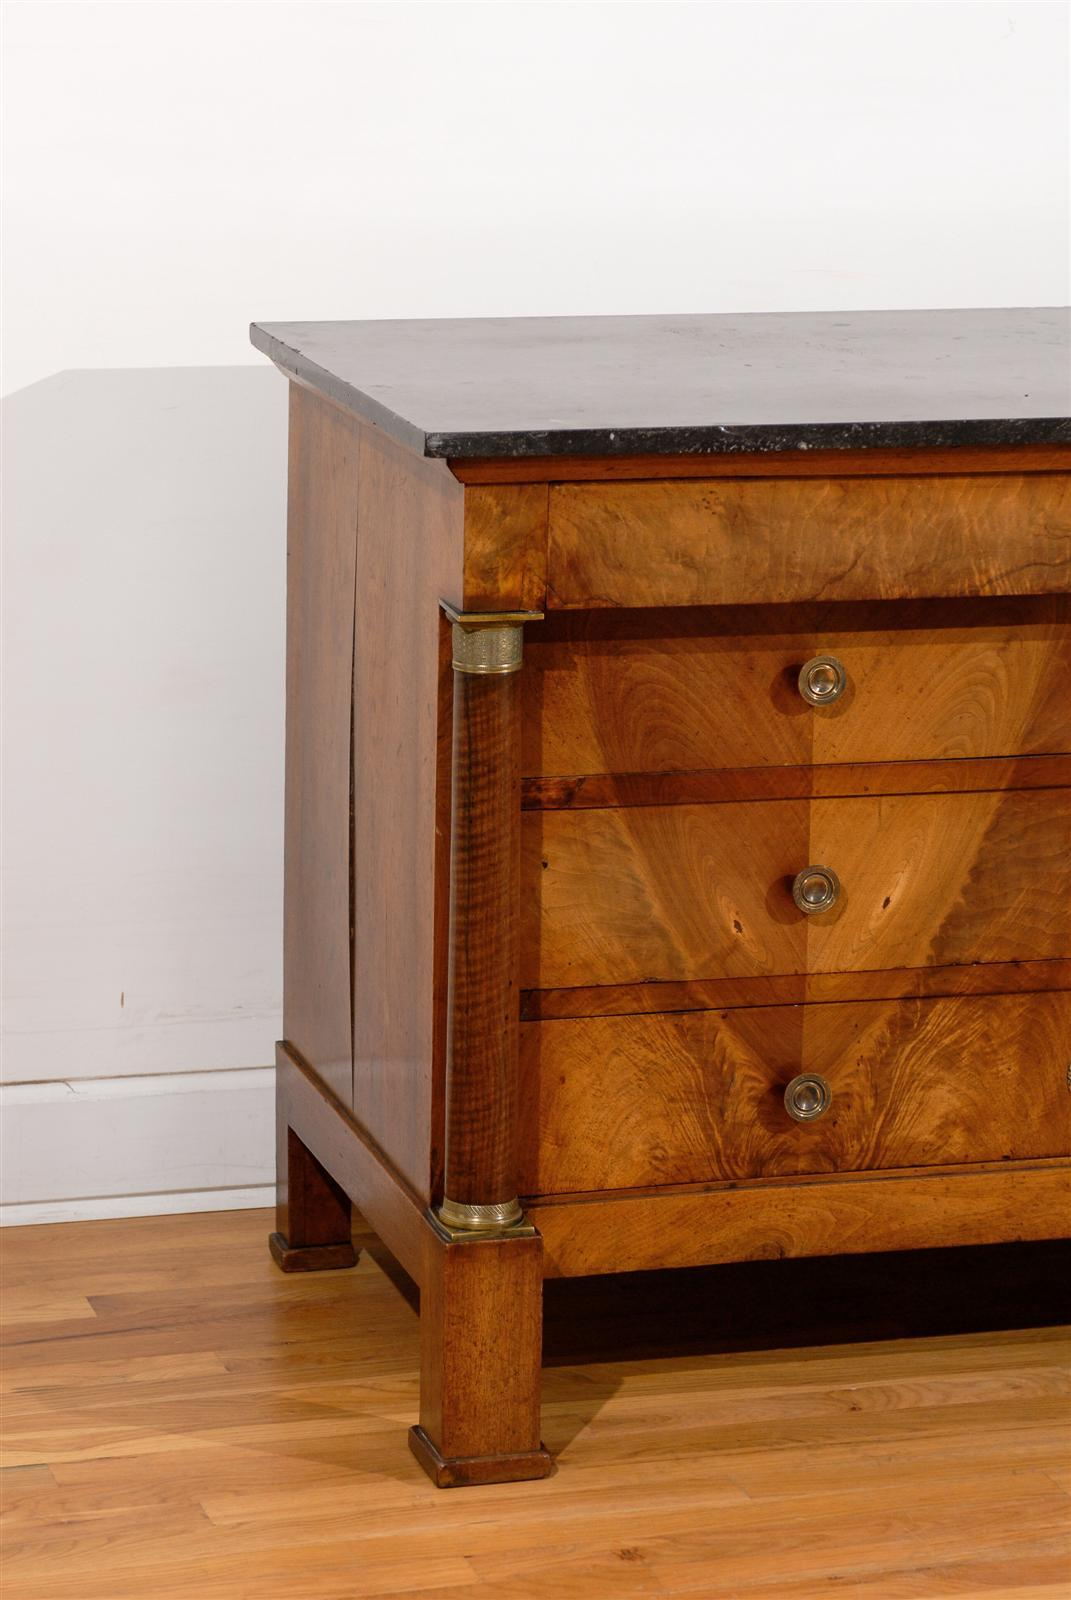 French Early 19th Century Empire Period Four-Drawer Commode with Marble Top For Sale 5